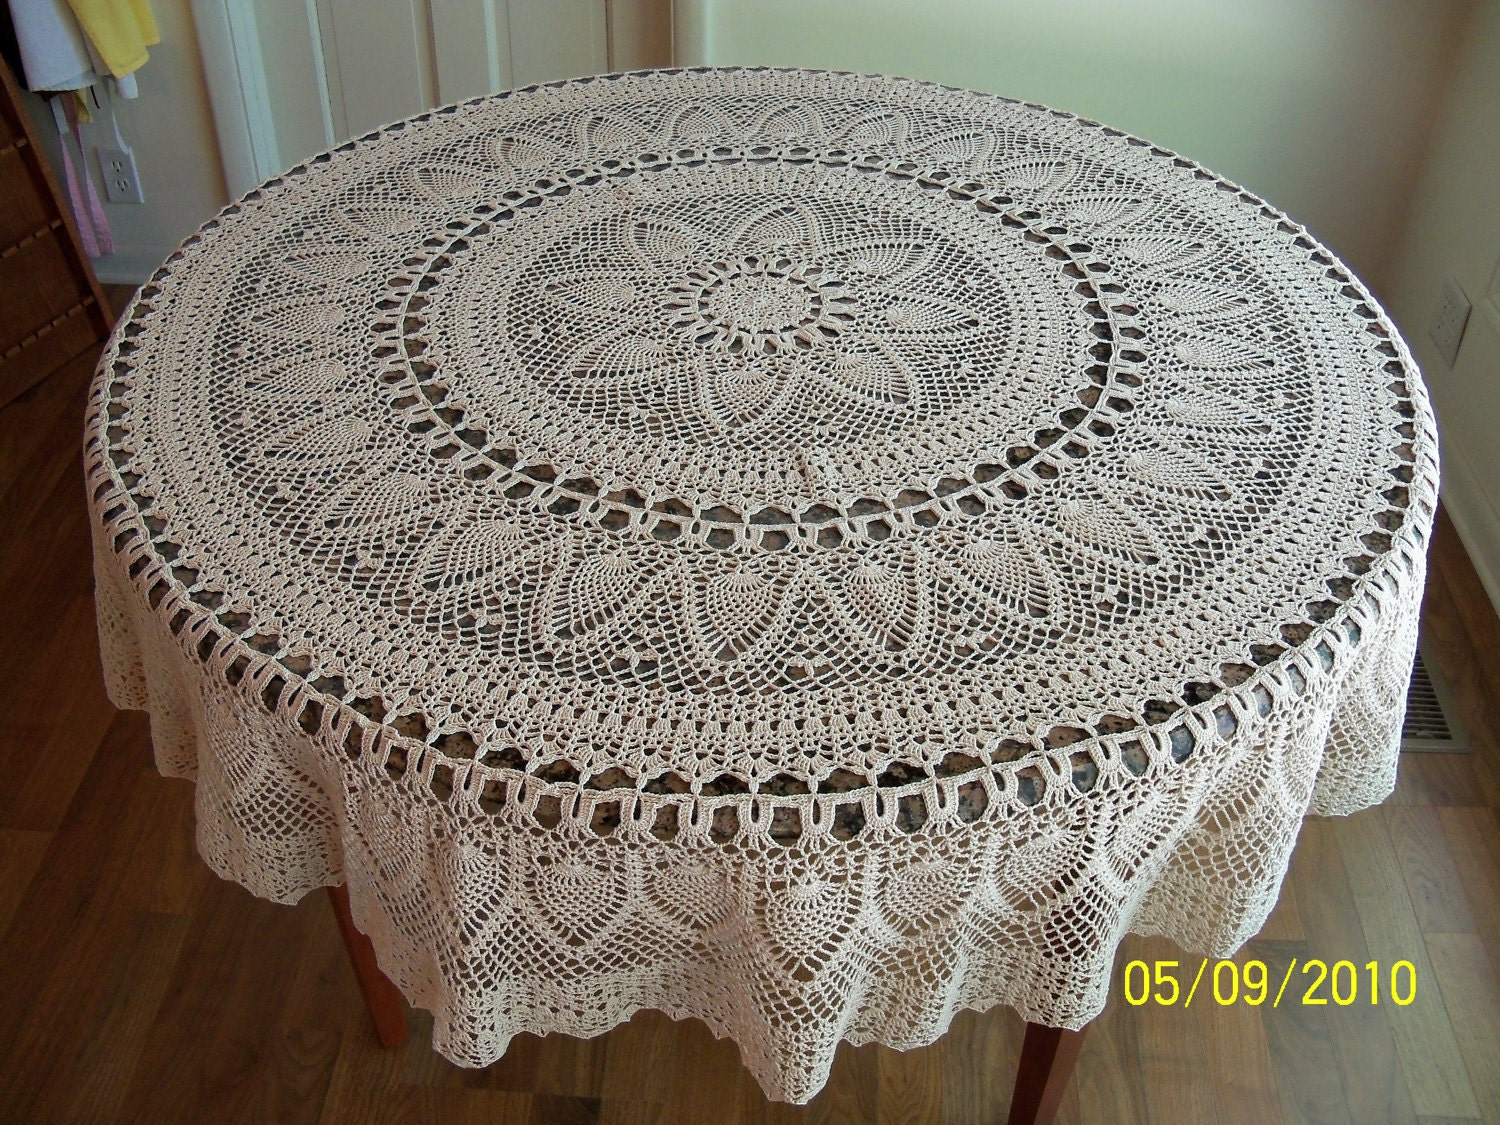 Handmade Crocheted Pineapple Tablecloth 70 inch Round by jenearly1